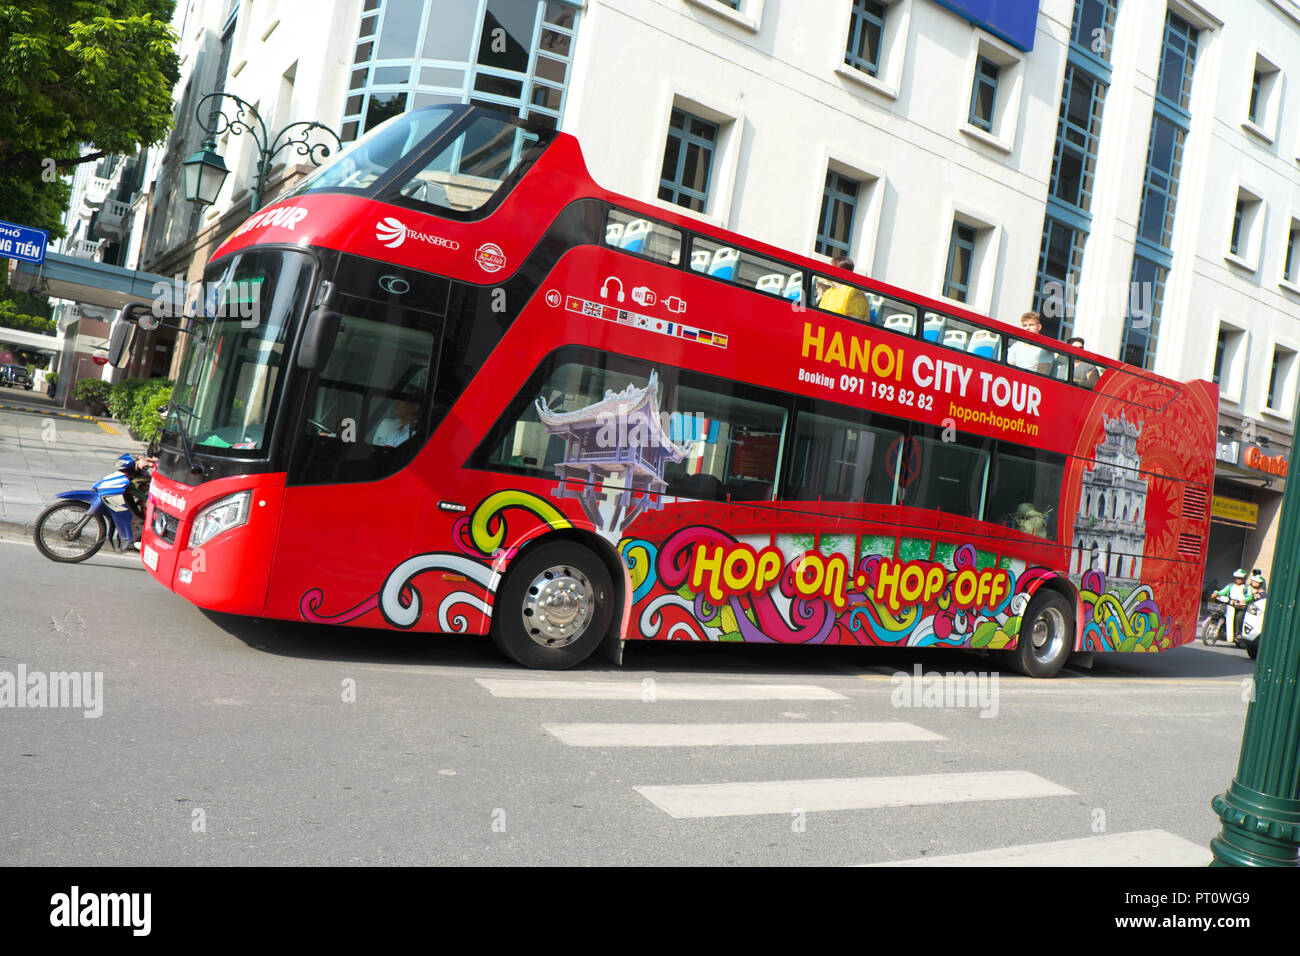 Hanoi Vietnam modern open top double decker tour sightseeing bus in the Old Quarter August 2018 - Stock Image